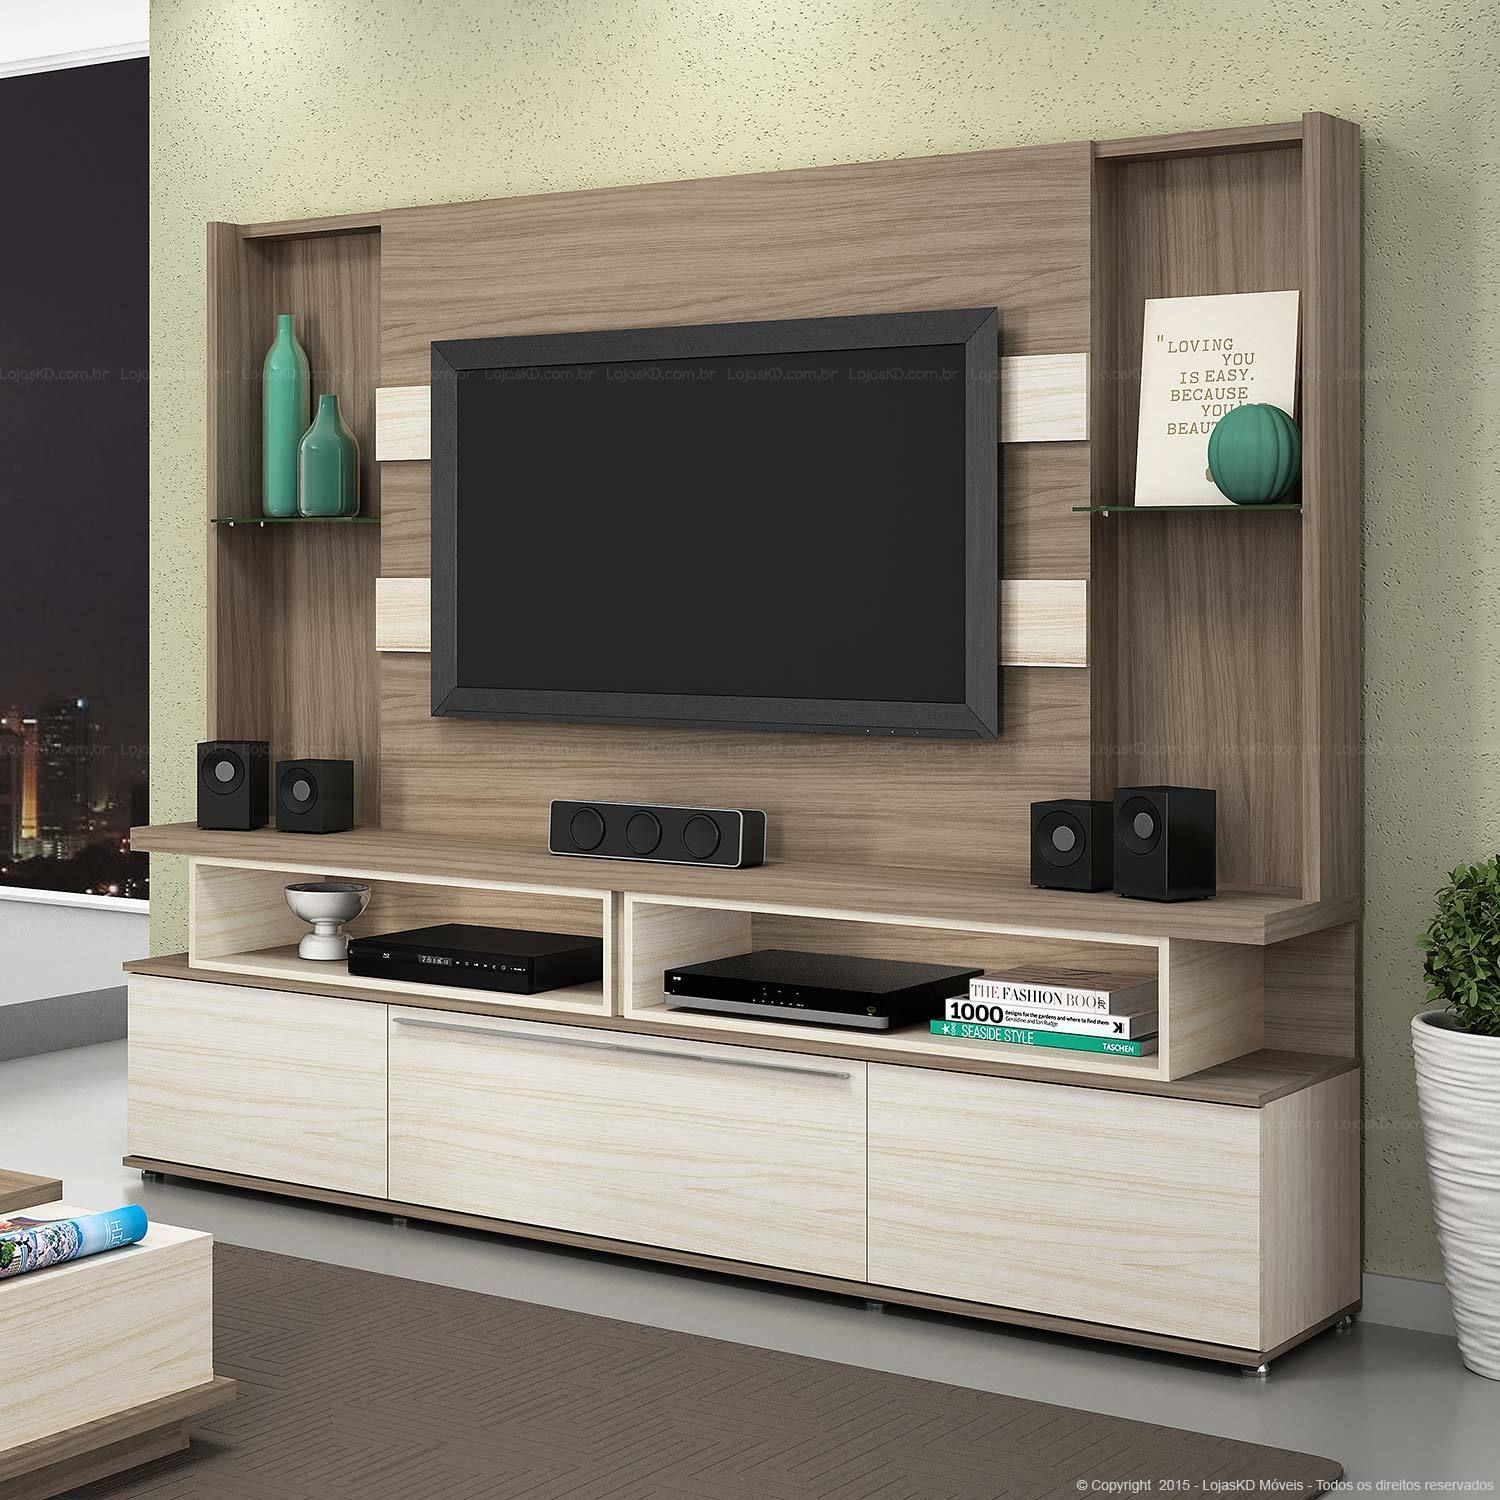 Home Theater O Cinema Na Sua Casa: Fotos De Home Theater Sofisticados - Google Search